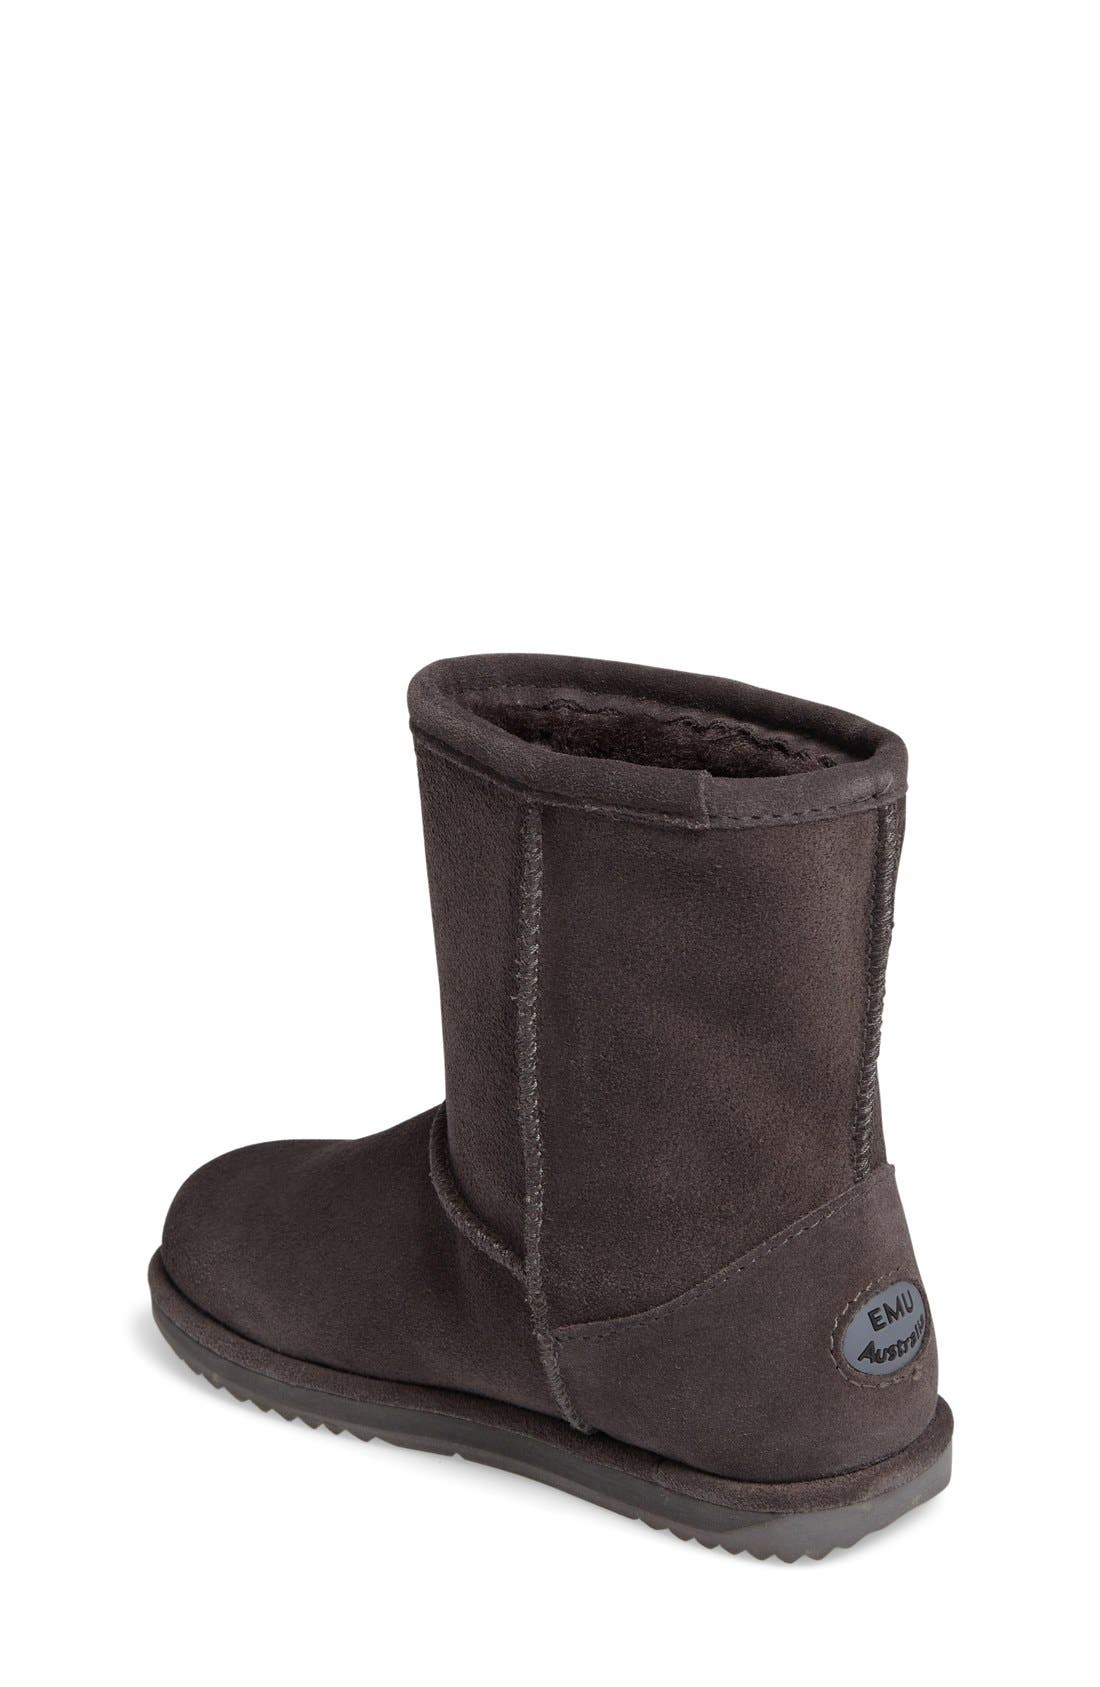 Brumby Waterproof Boot,                             Alternate thumbnail 2, color,                             Charcoal Suede